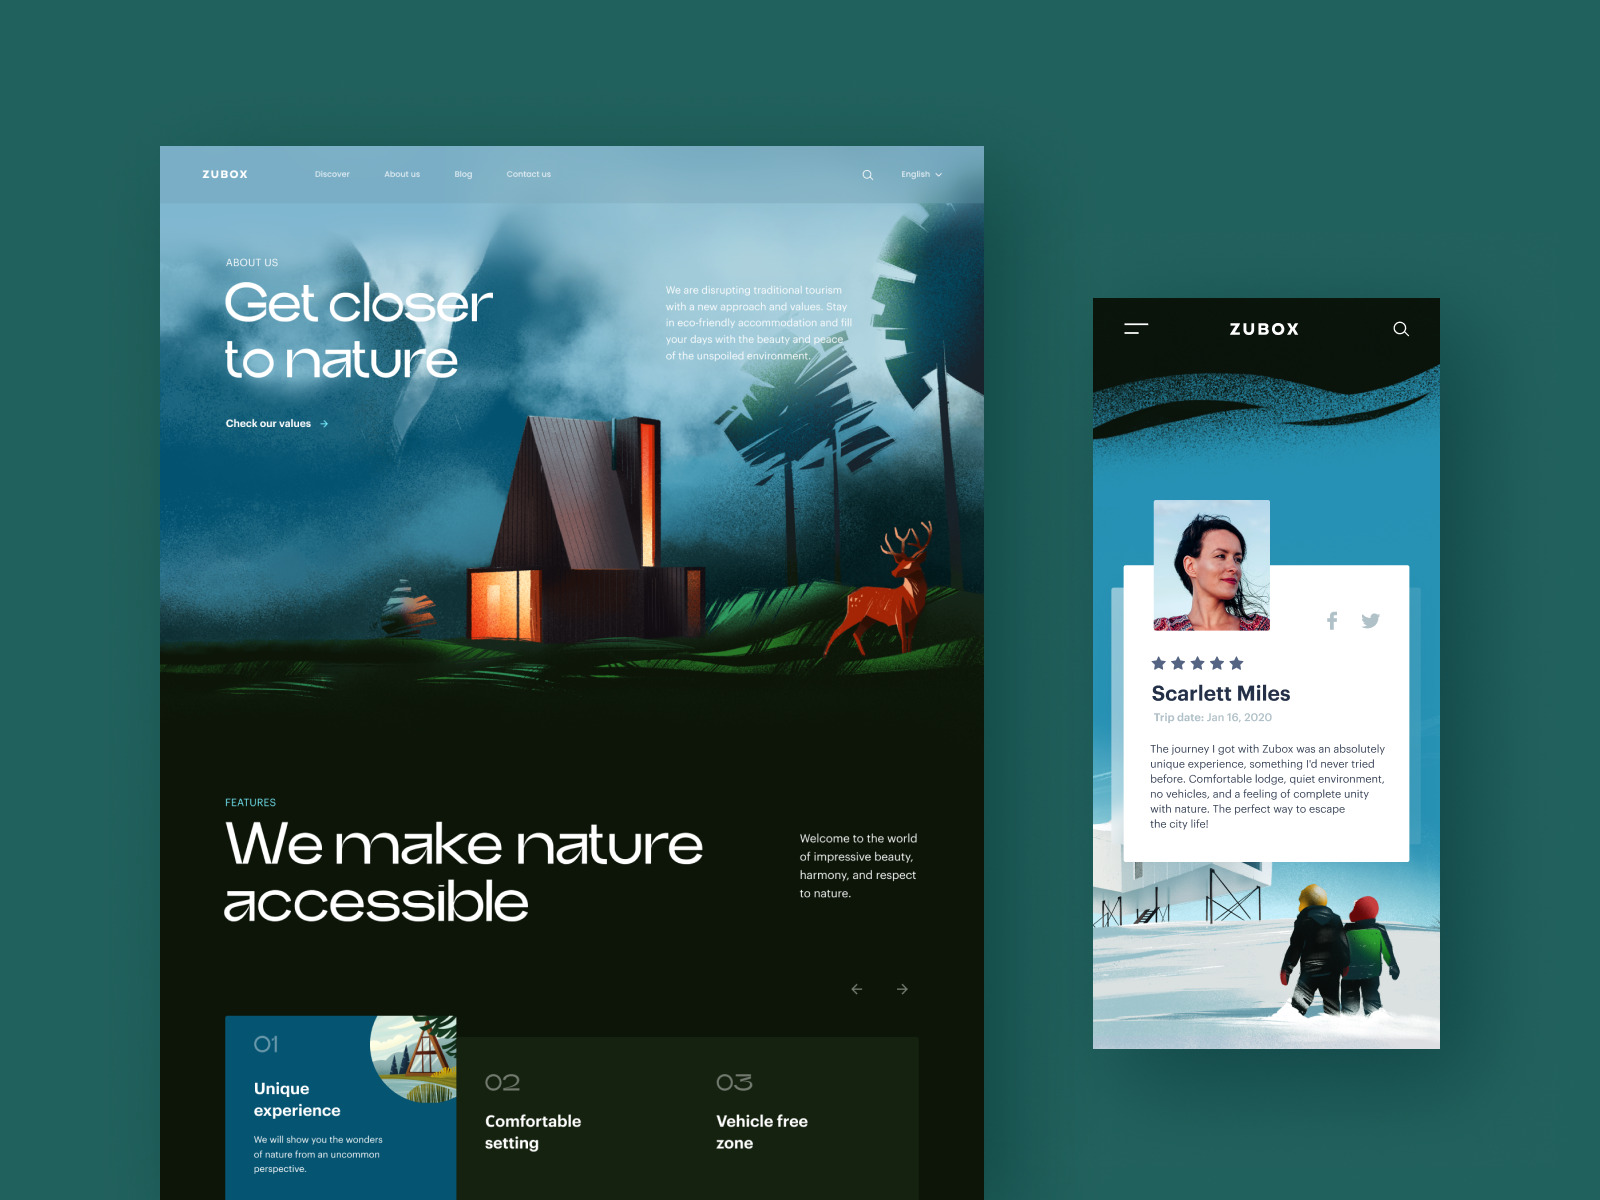 Hero Images in Web Design: When, Why, and How to Use